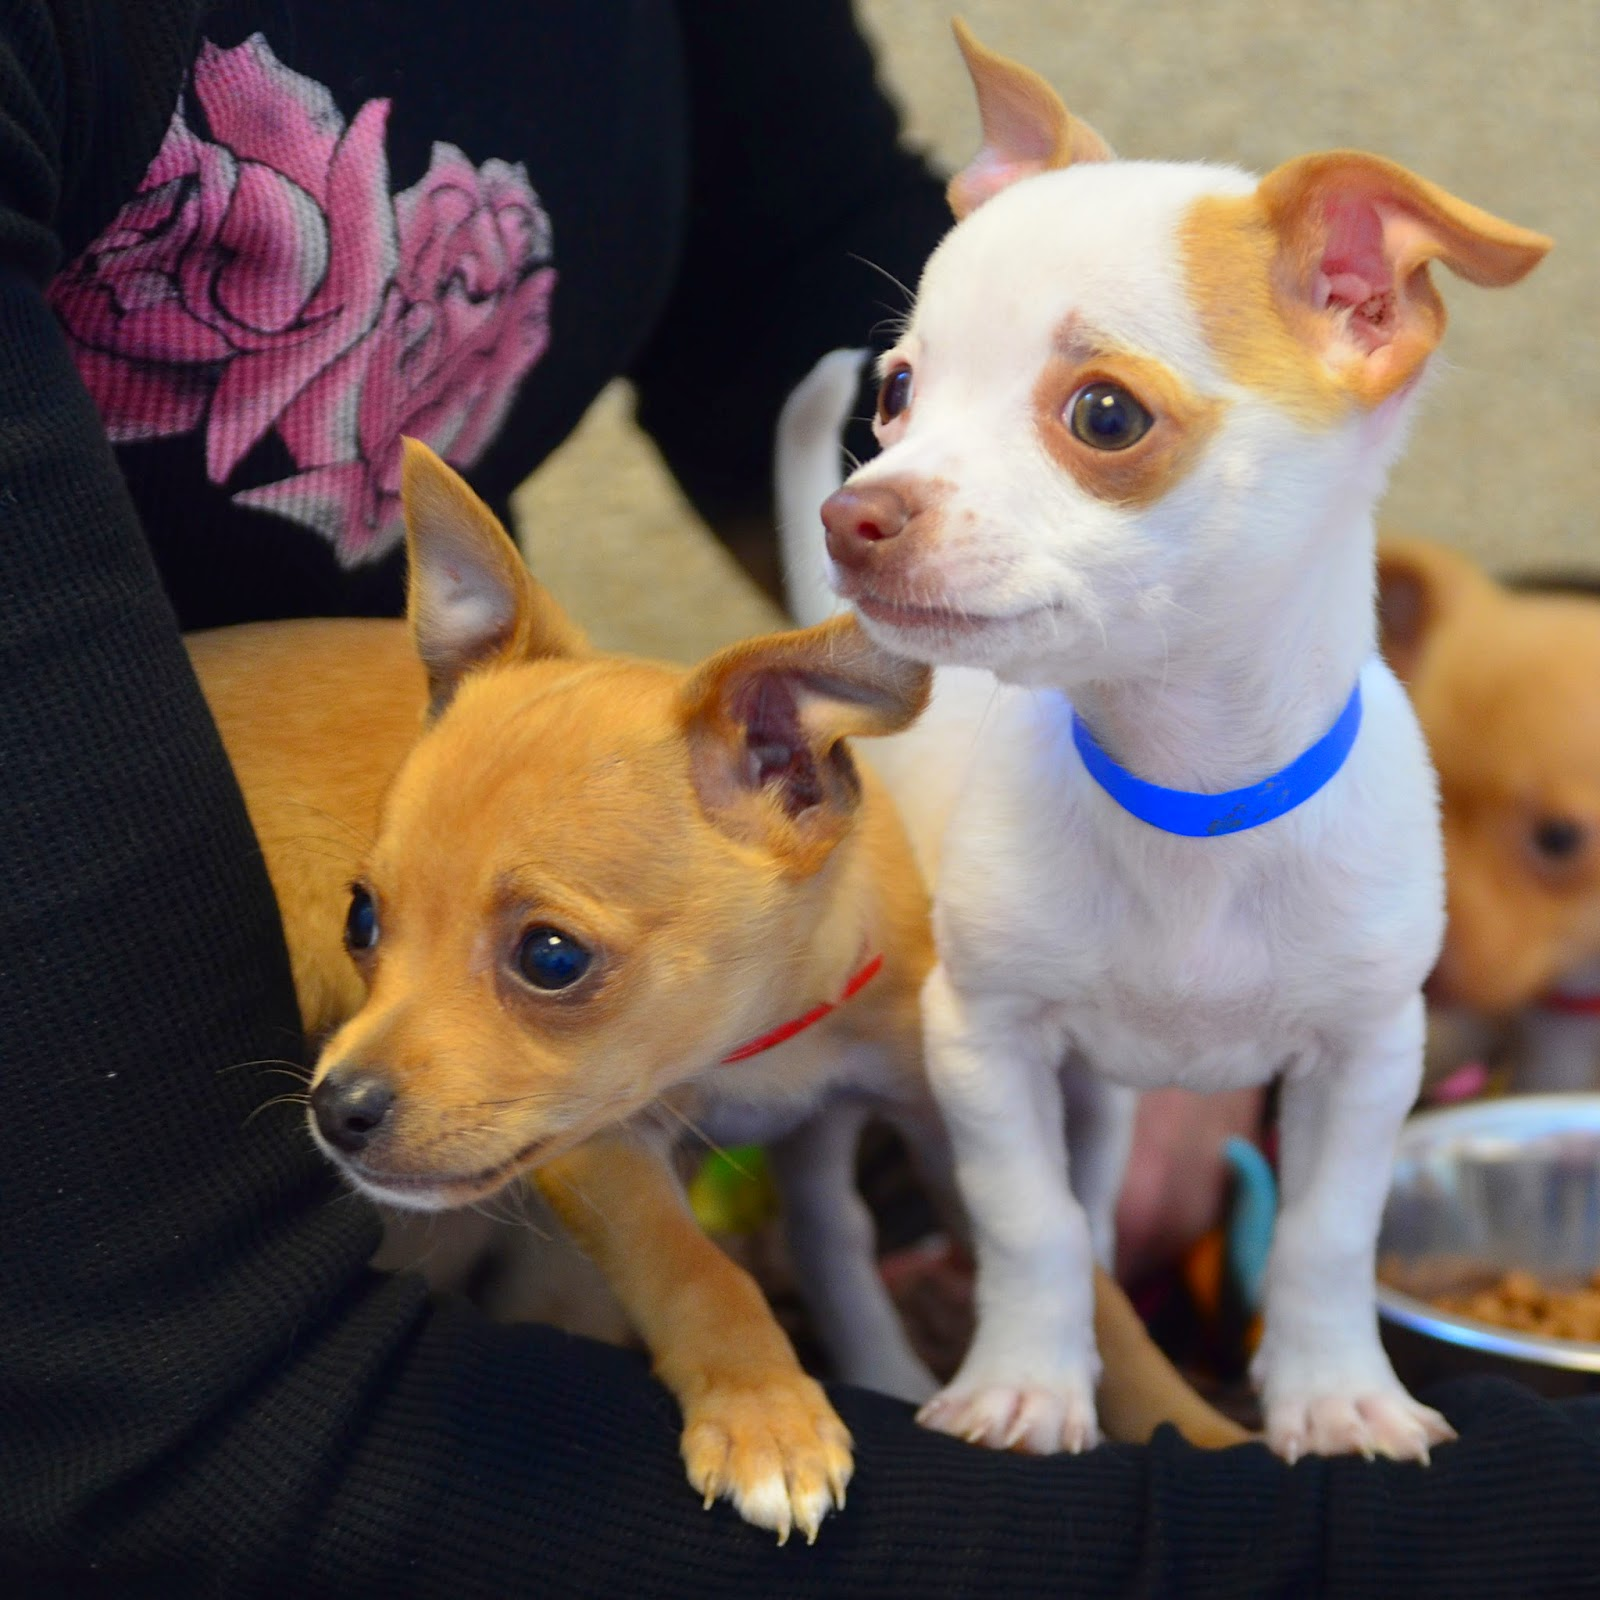 Interview with President of the Humane Society Silicon Valley about The Chihuahua Project